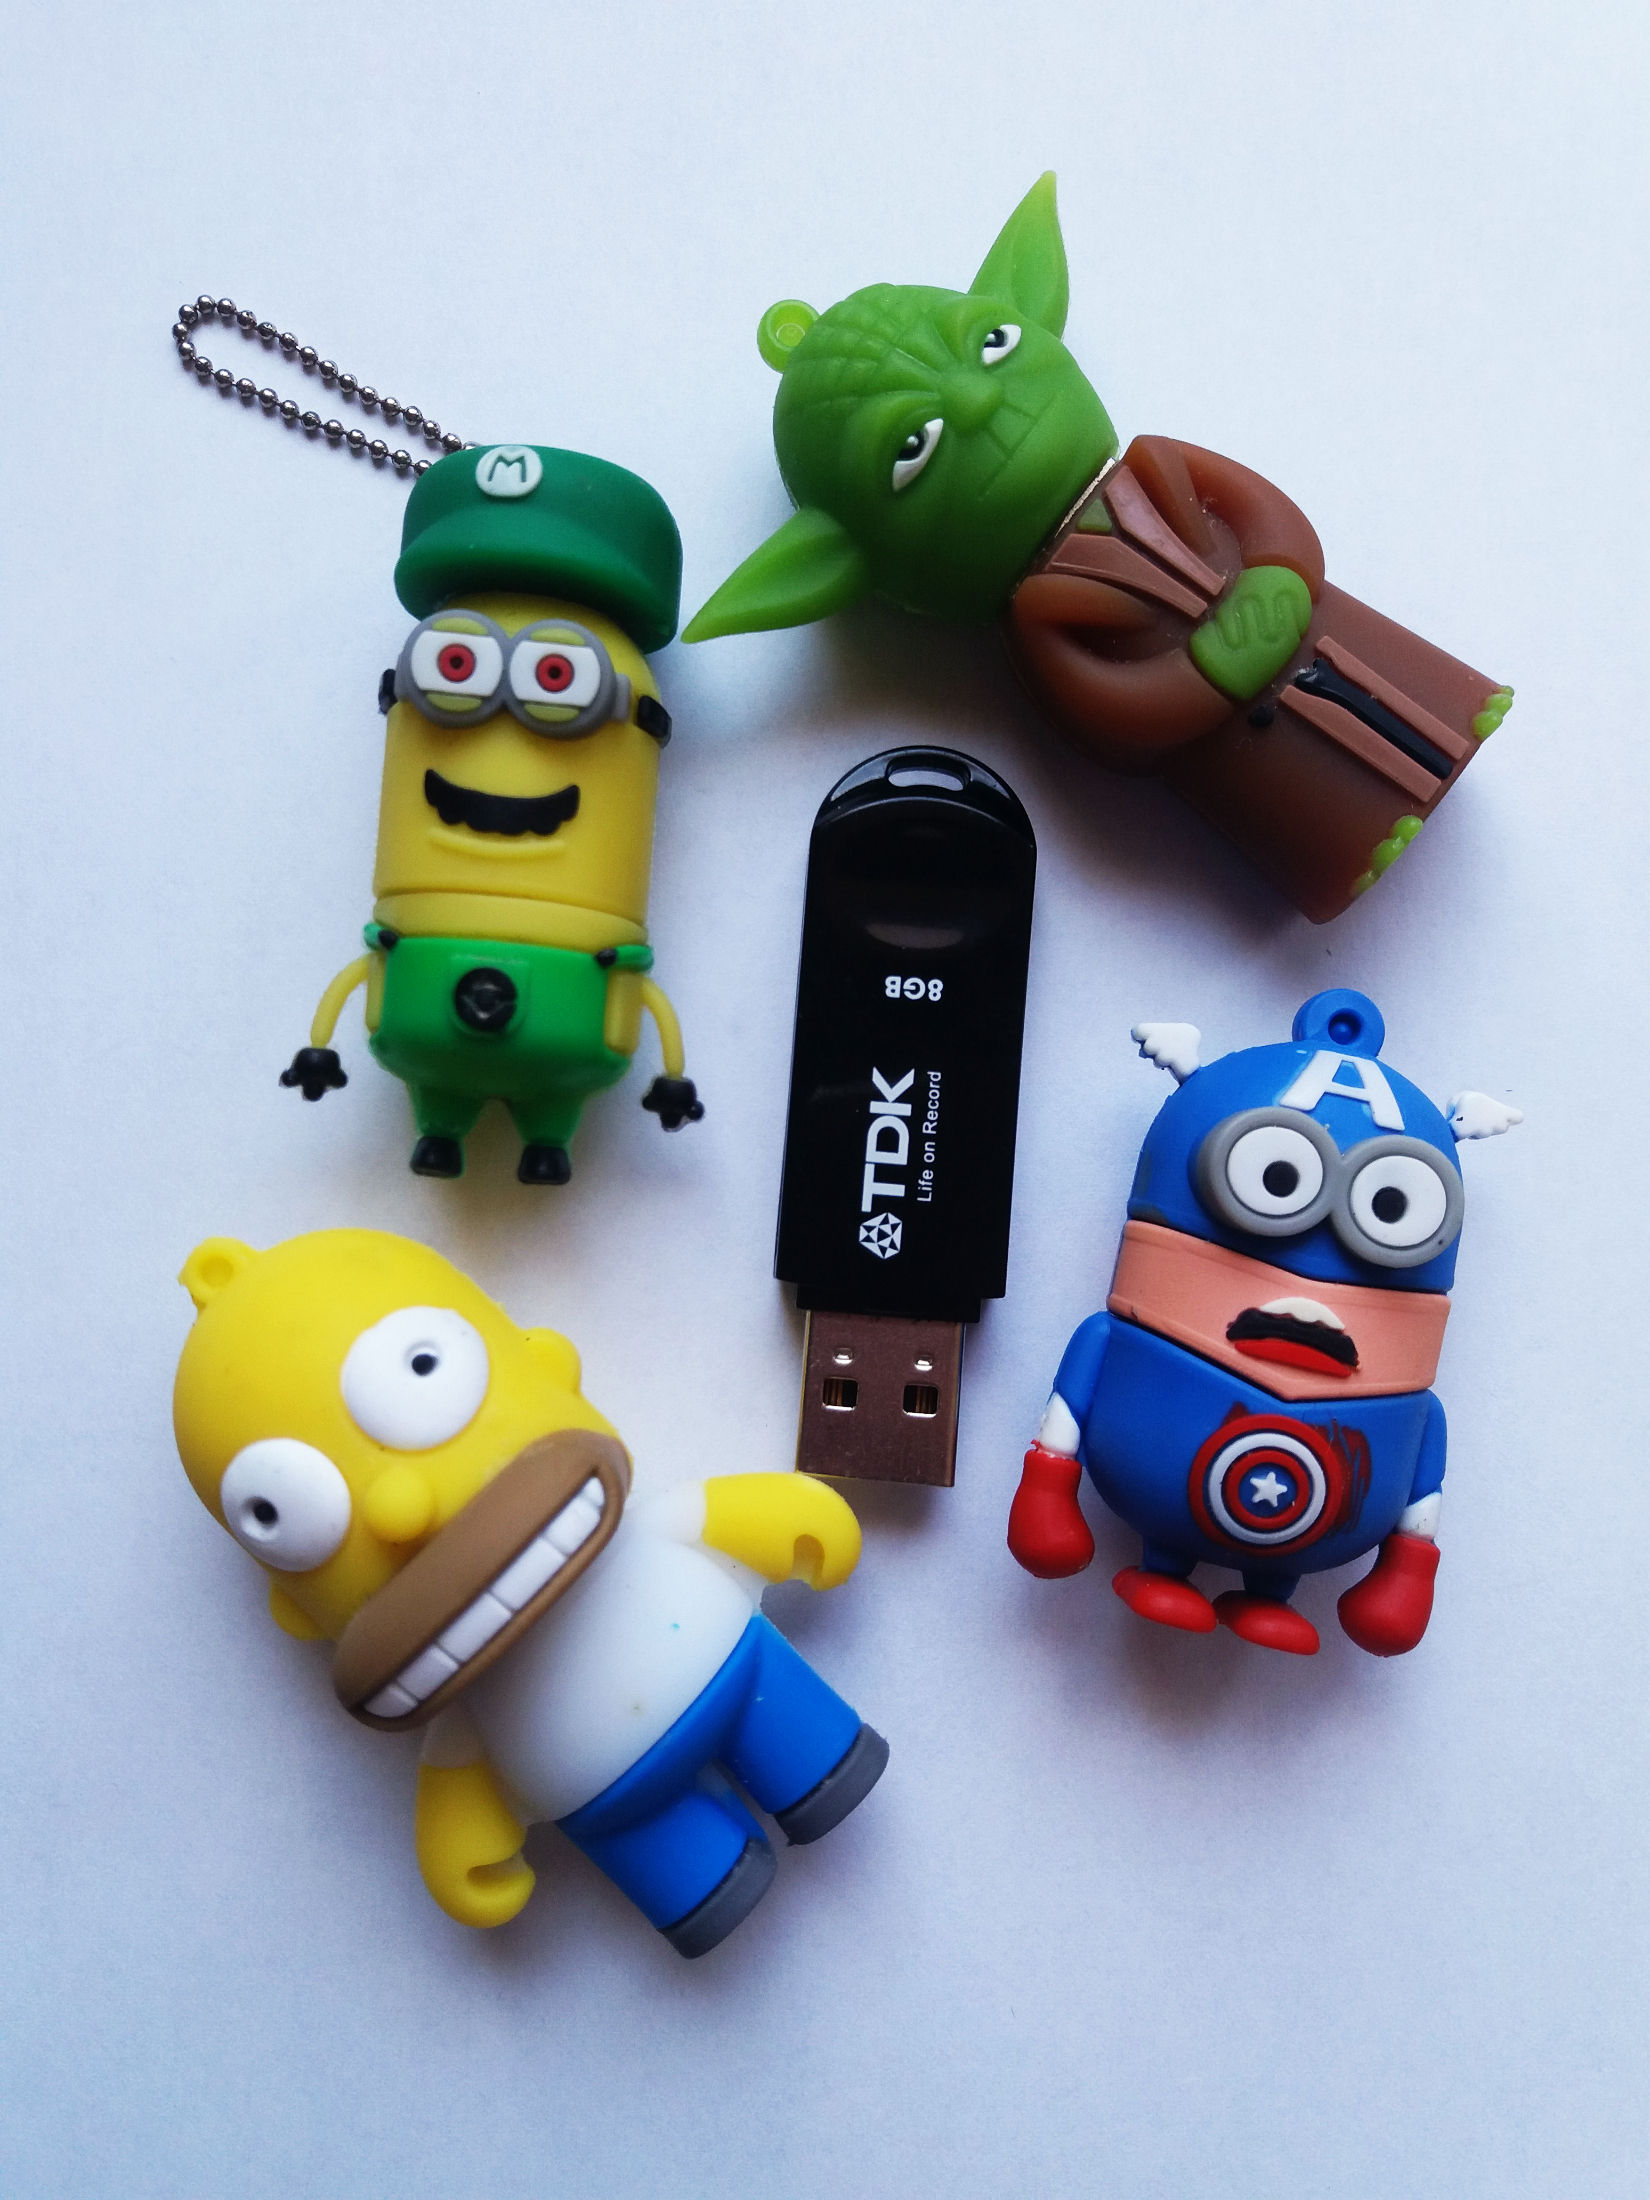 custom usbs: minion, homer simpson, yoda and captain america